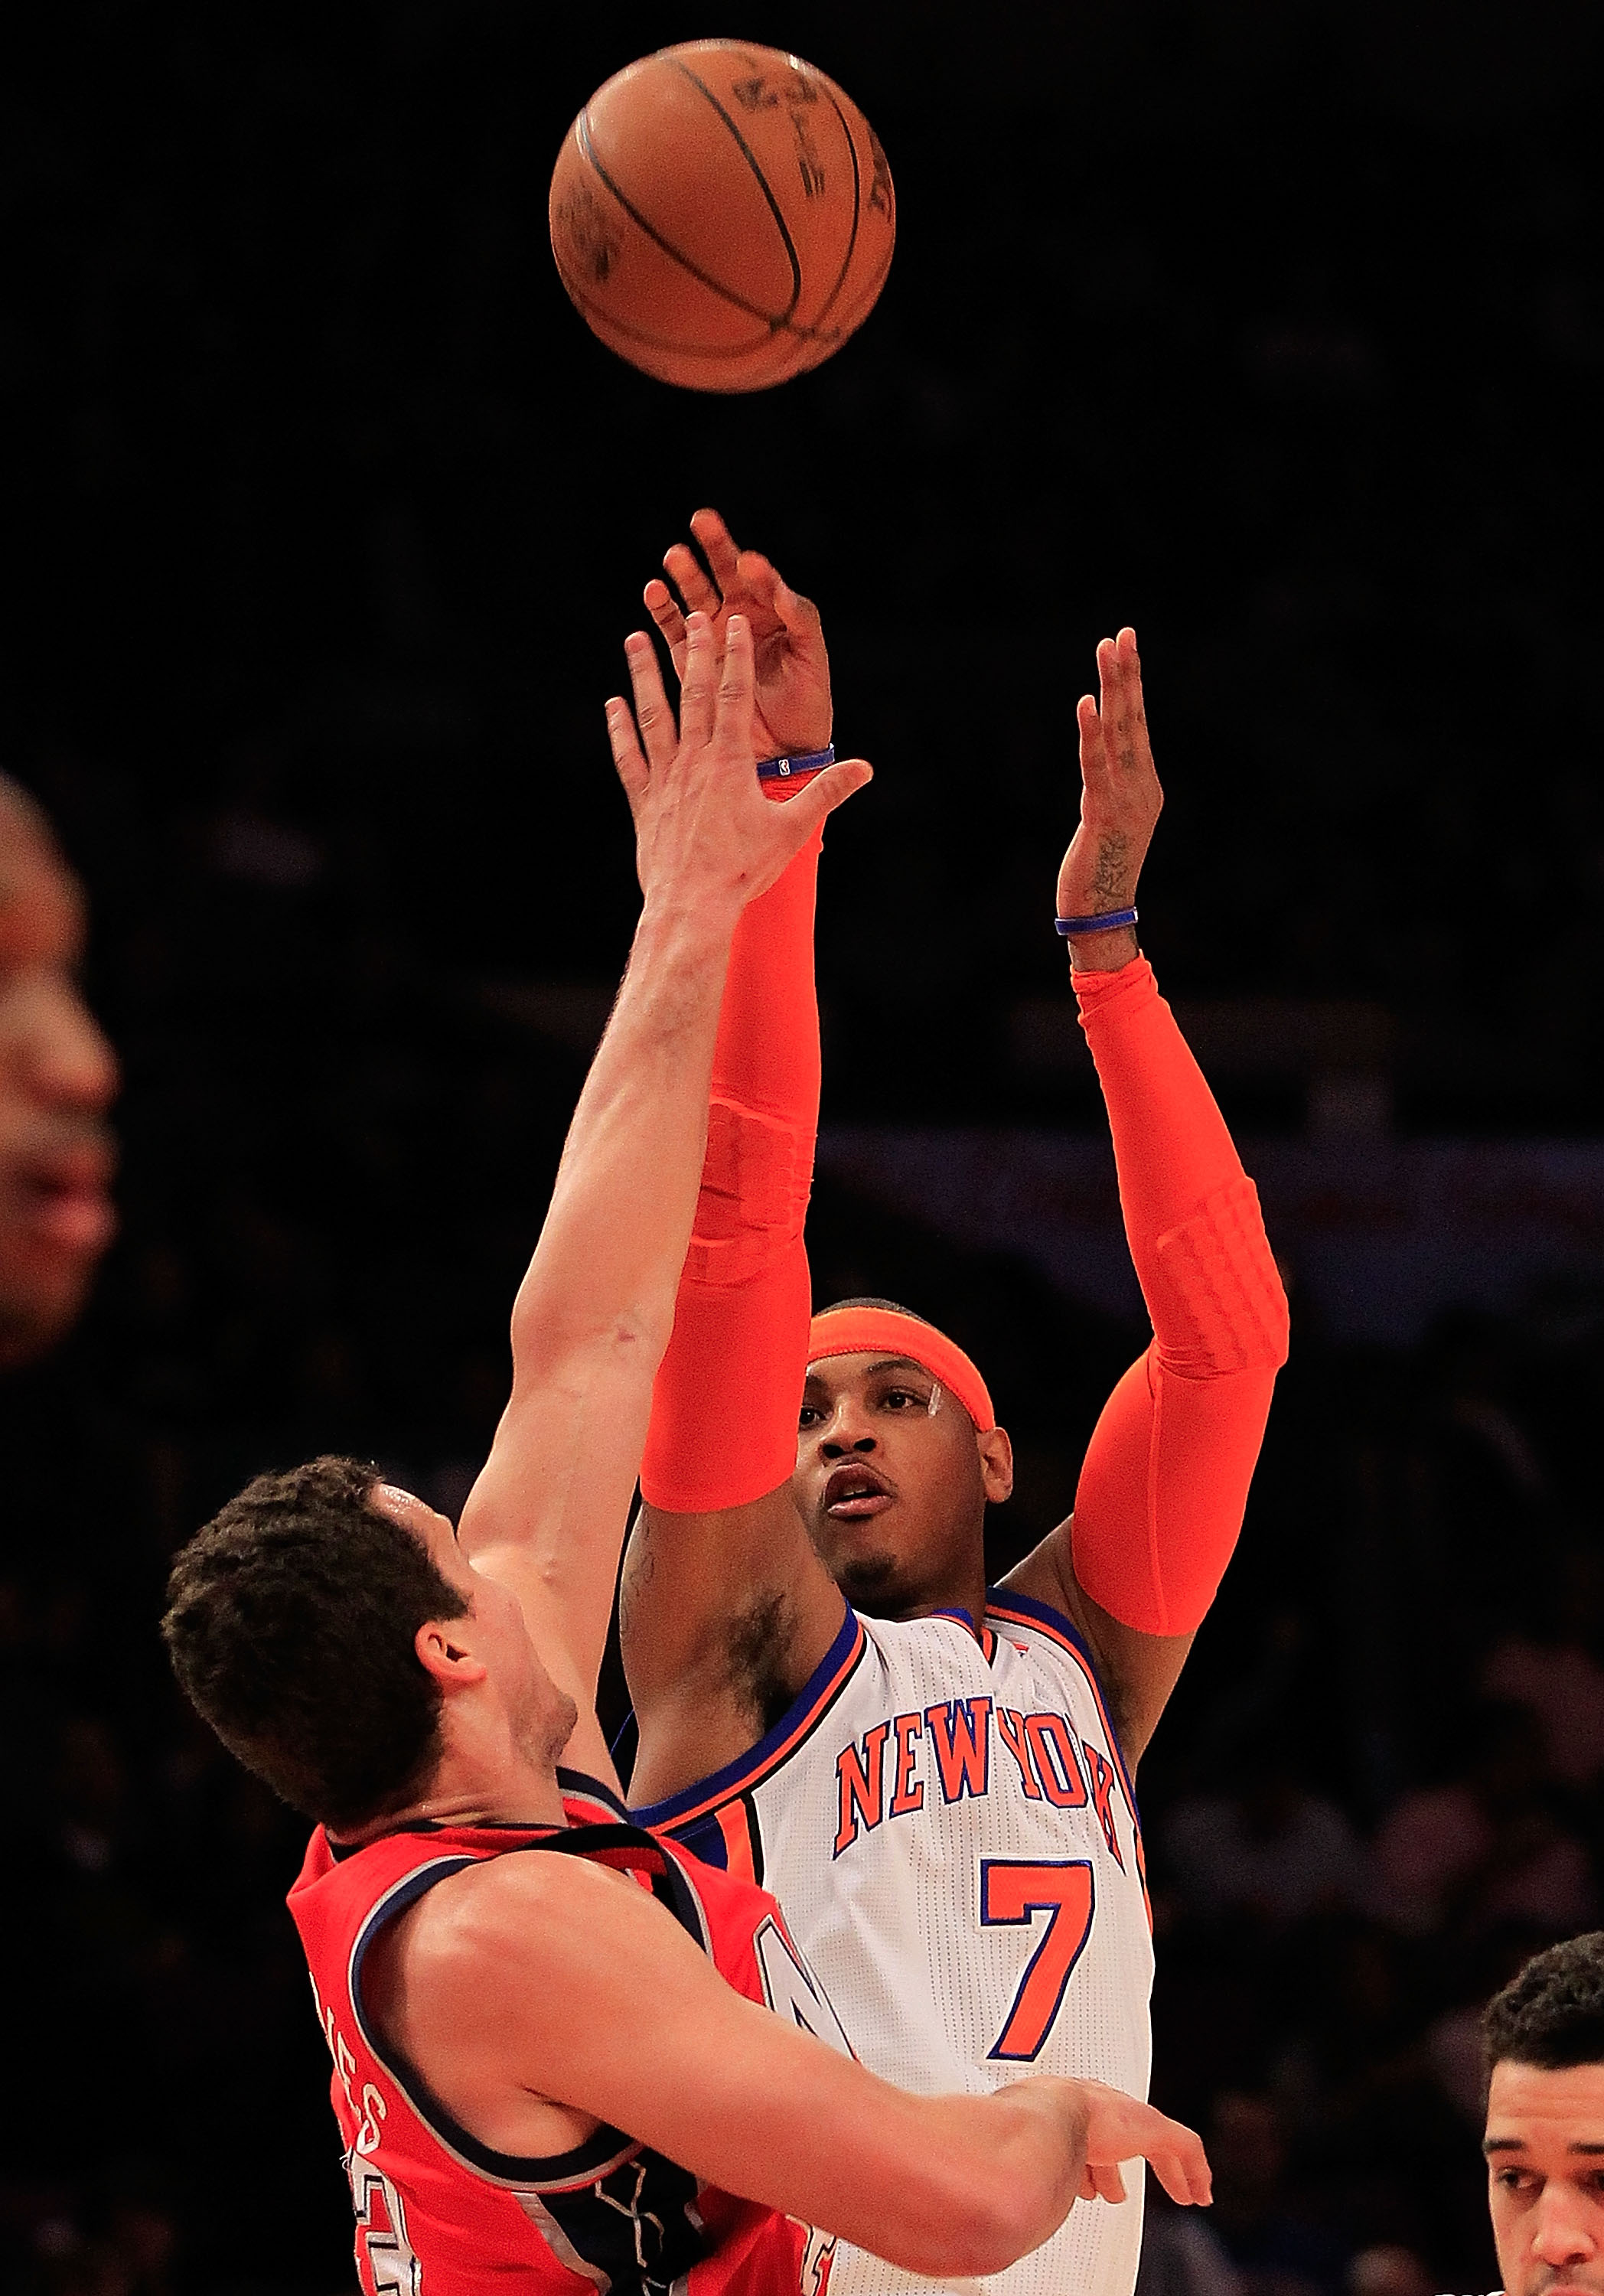 NEW YORK, NY - MARCH 30:  Carmelo Anthony #7 of the New York Knicks shoots over Kris Humphries #43 of the New Jersey Nets at Madison Square Garden on March 30, 2011 in New York City. NOTE TO USER: User expressly acknowledges and agrees that, by downloadin